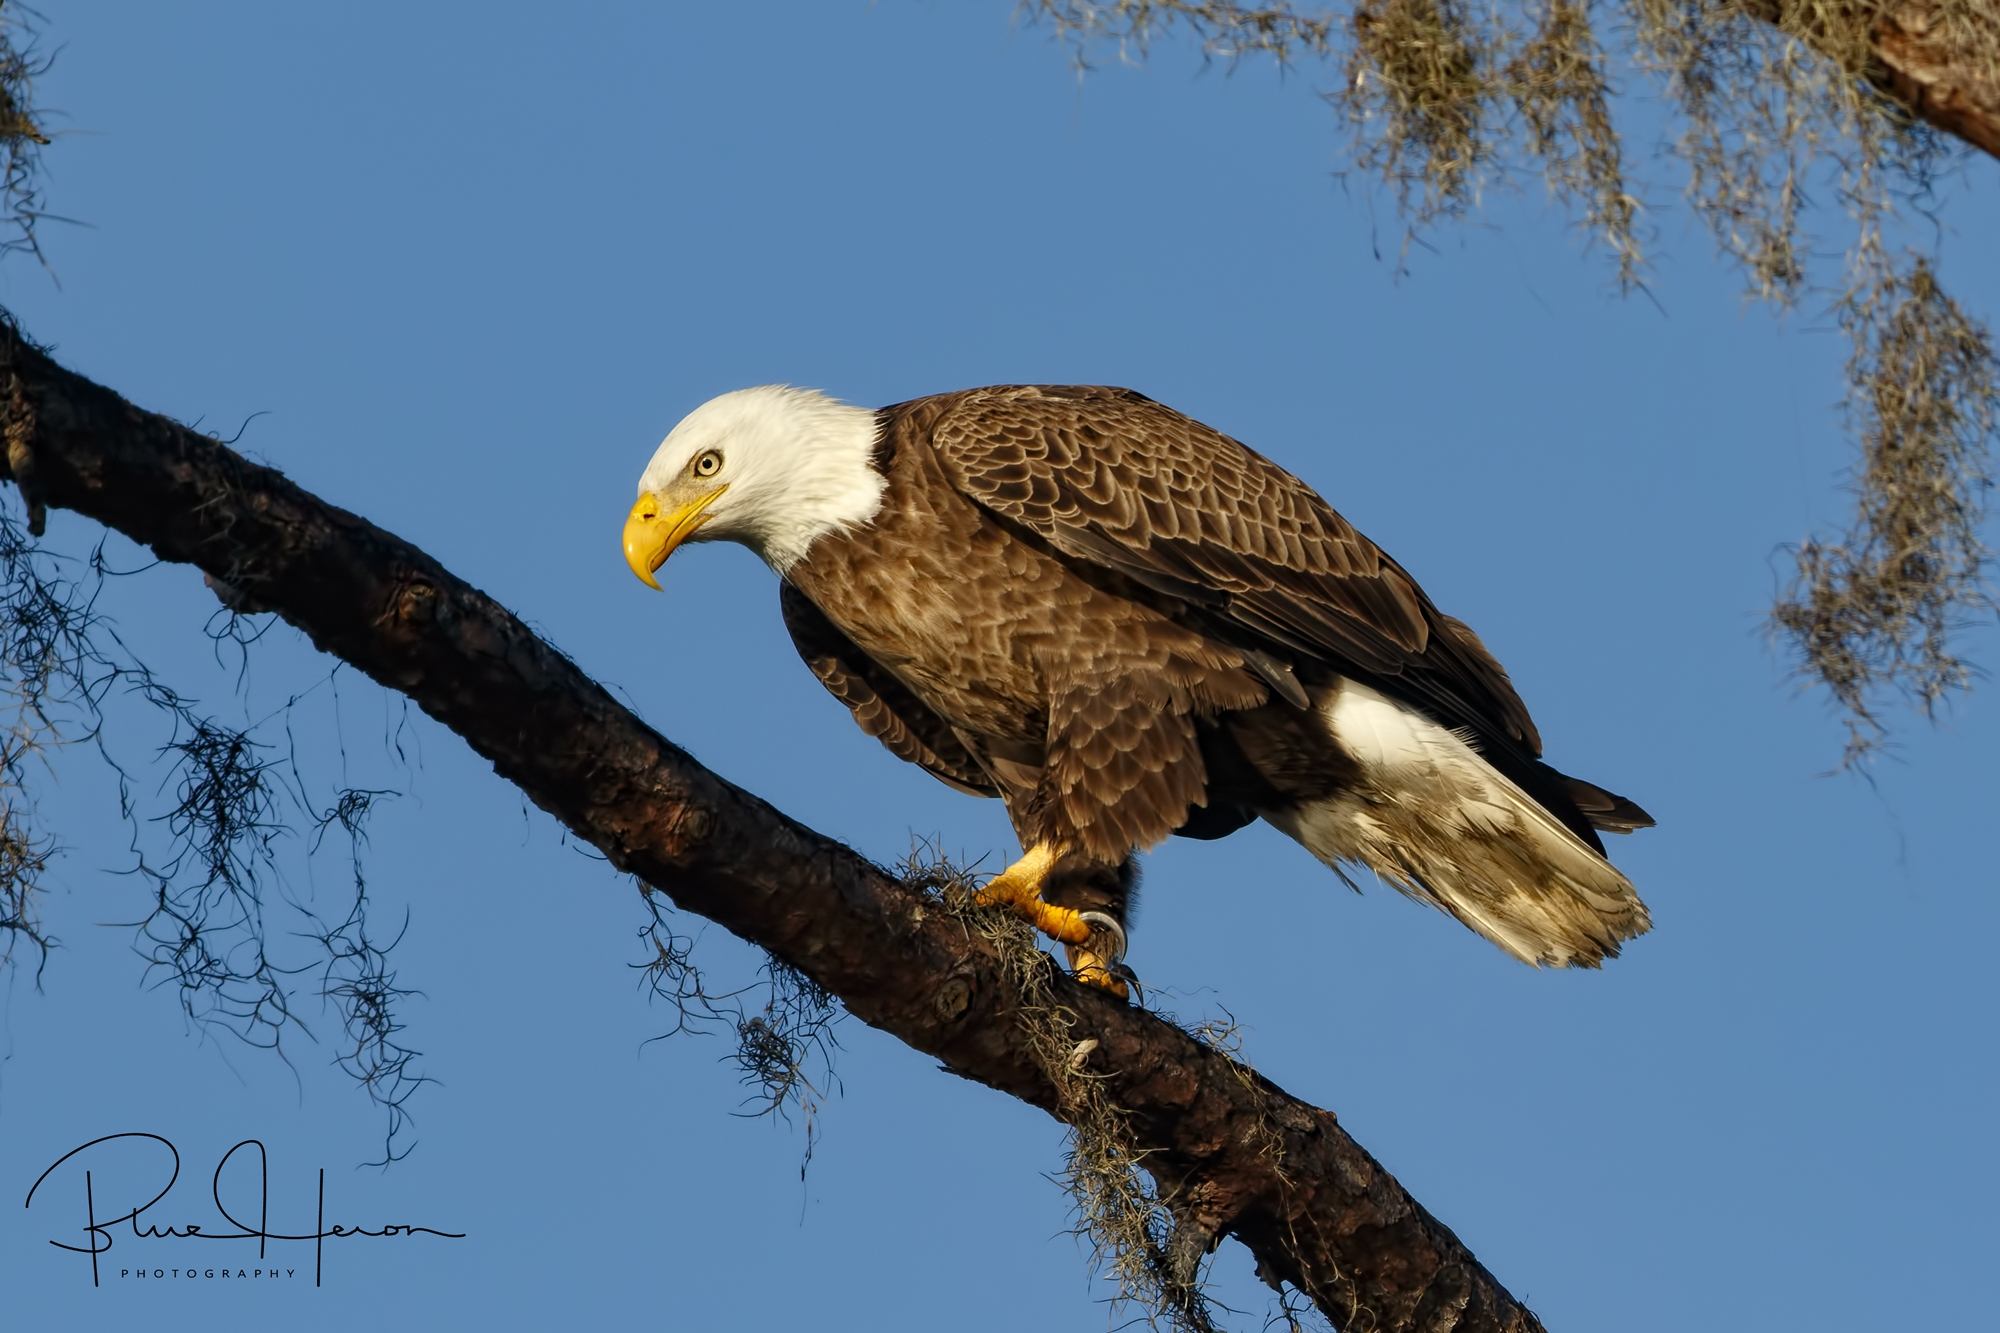 A Bald Eagle male rests after providing breakfast to some newly hatched eaglets.